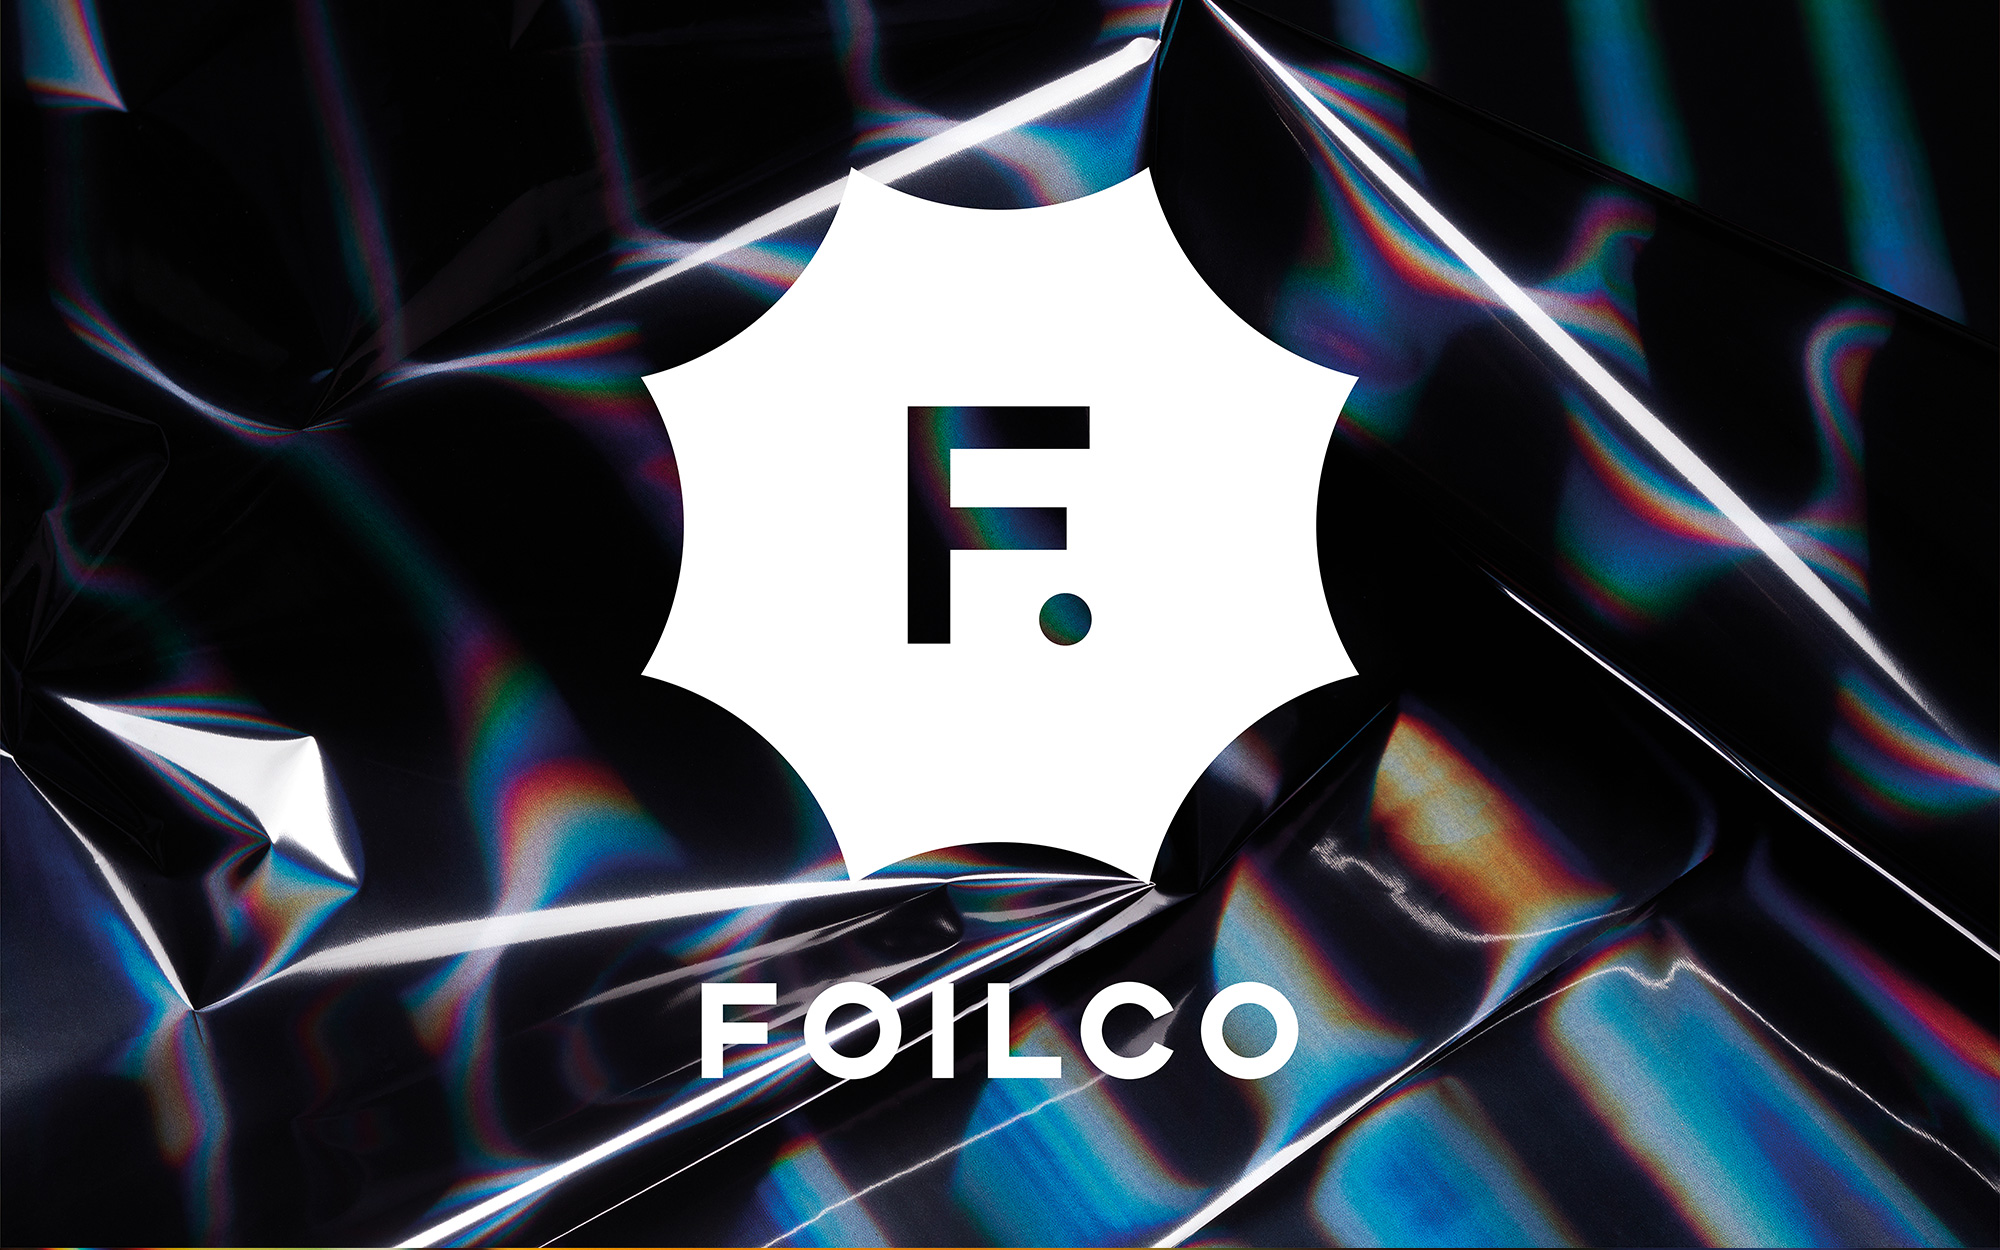 New Logo and Identity for Foilco by Studio DBD